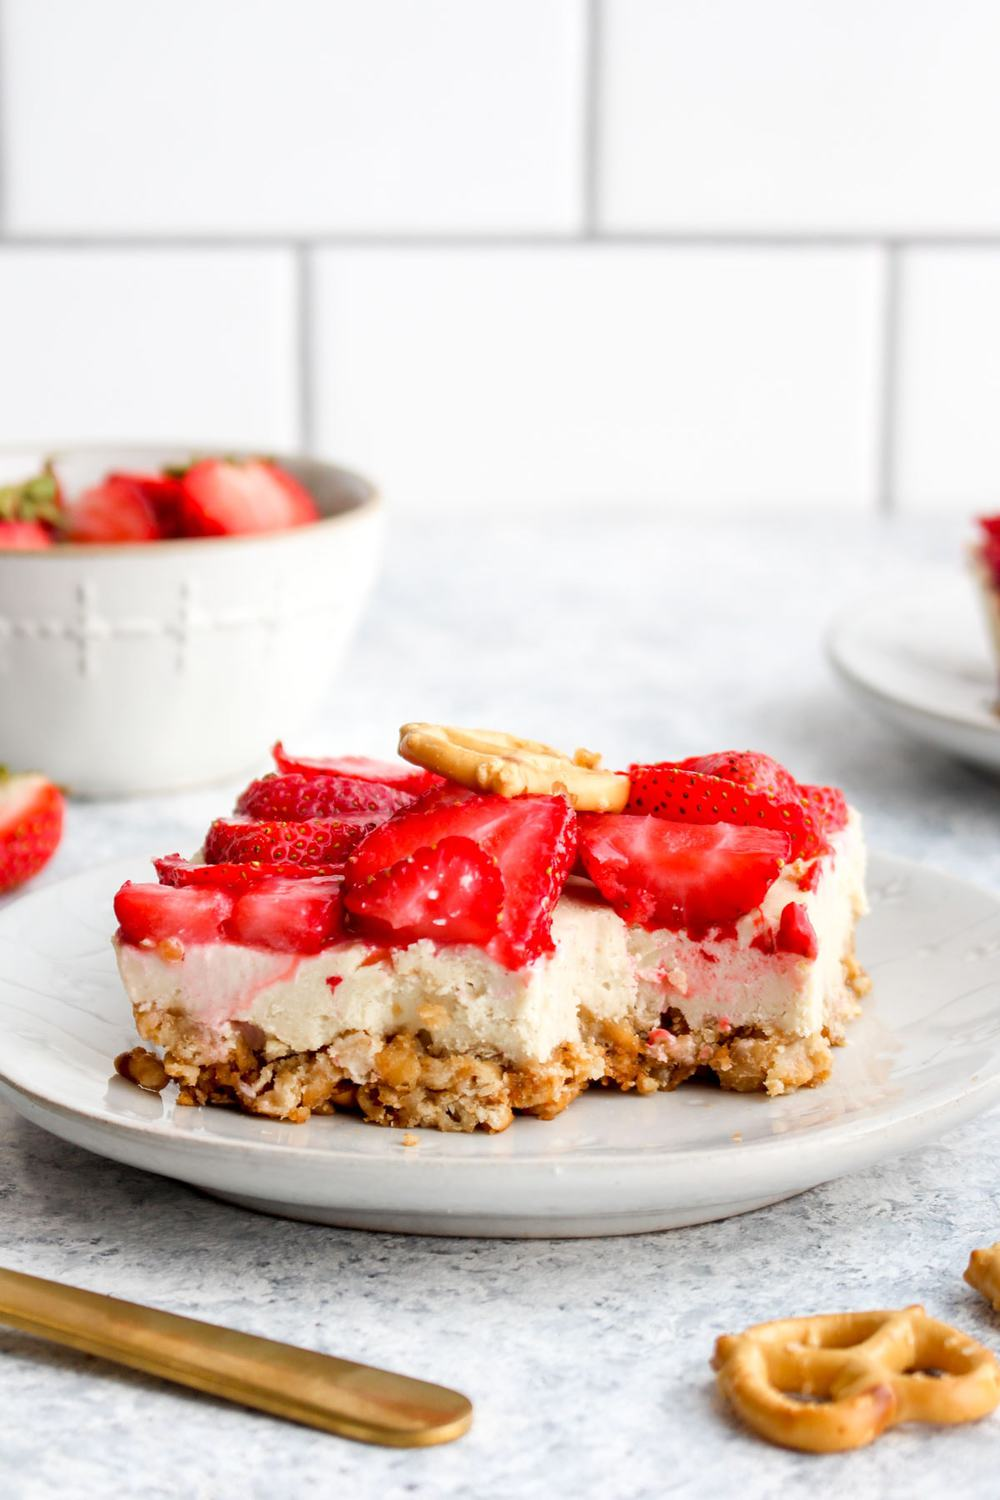 Healthy pretzel salad with a bite out of it topped with strawberries.